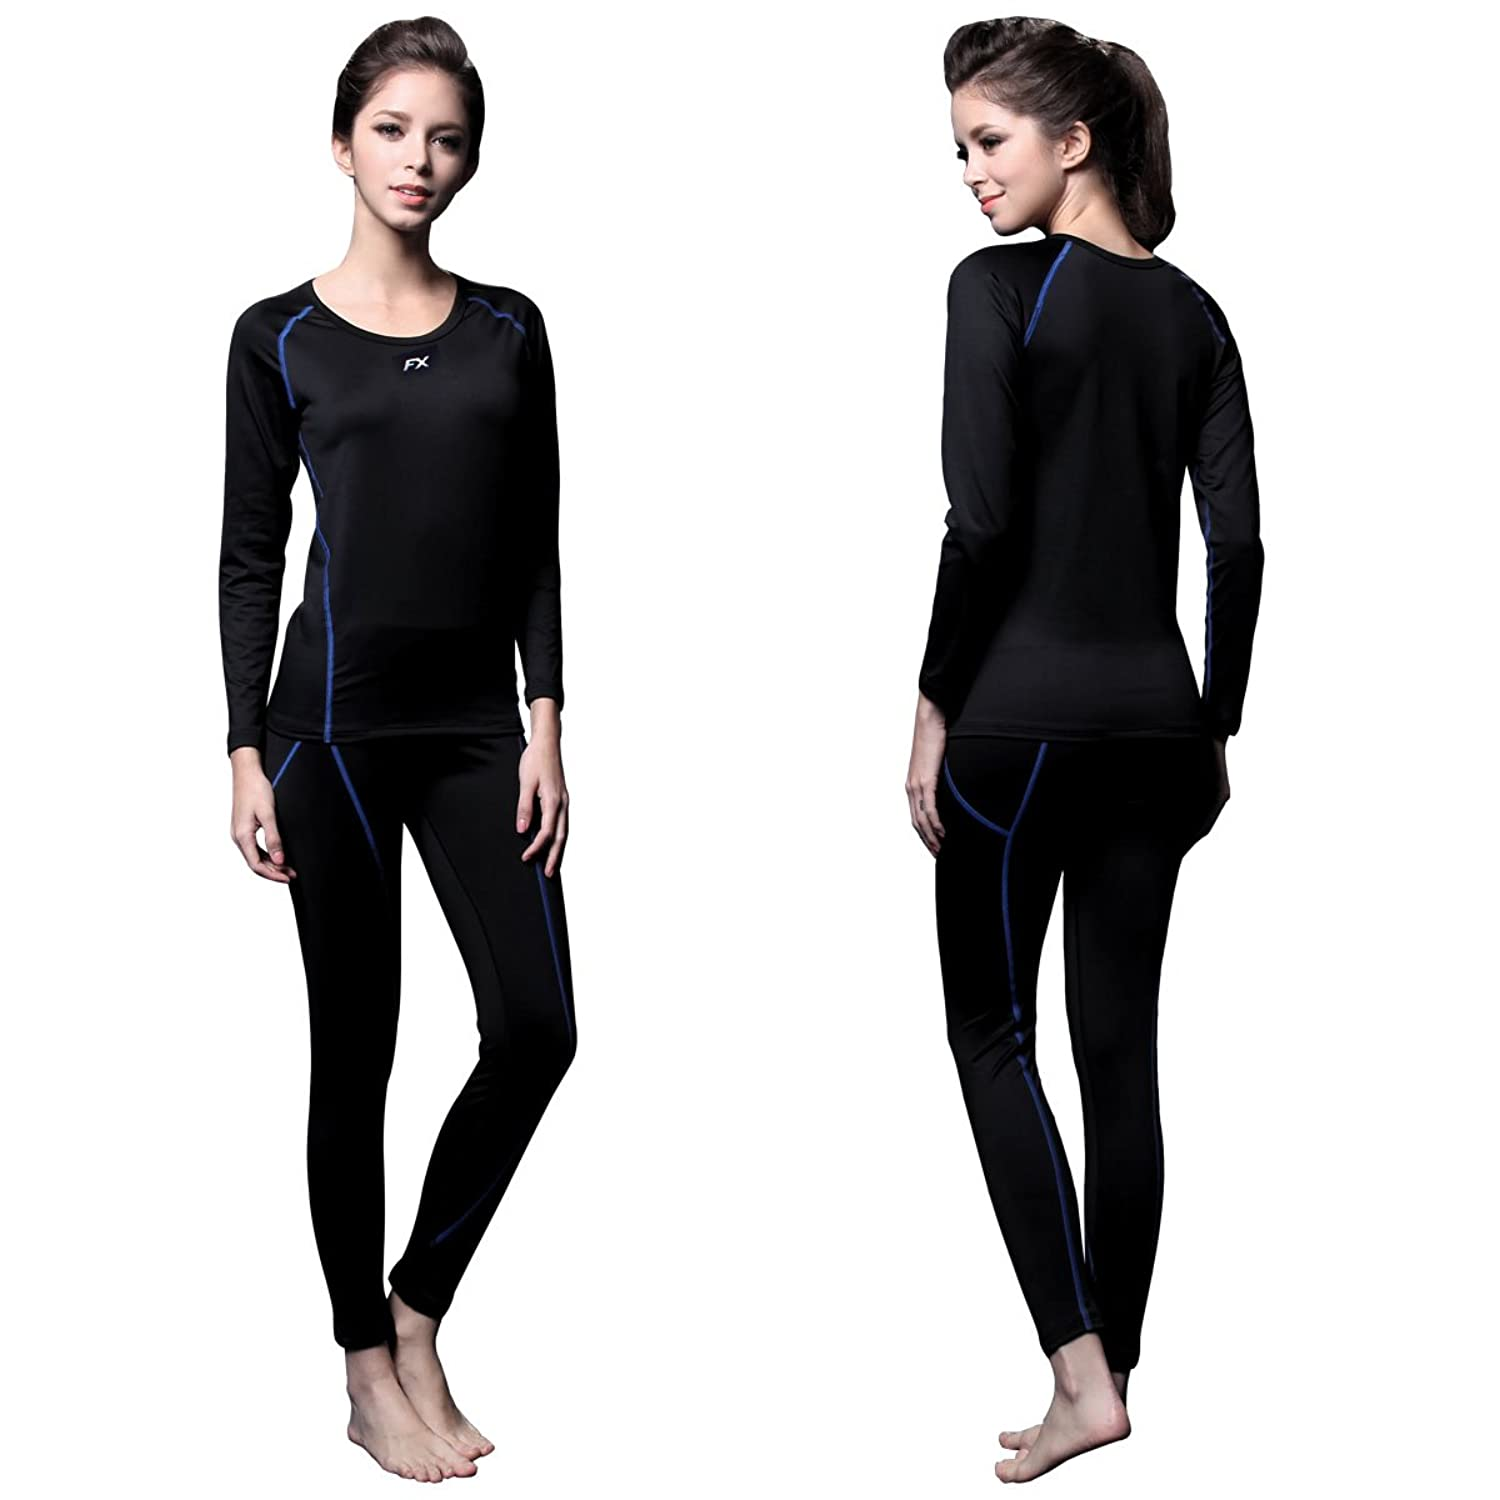 Amazon Best Sellers: Best Women's Thermal Underwear